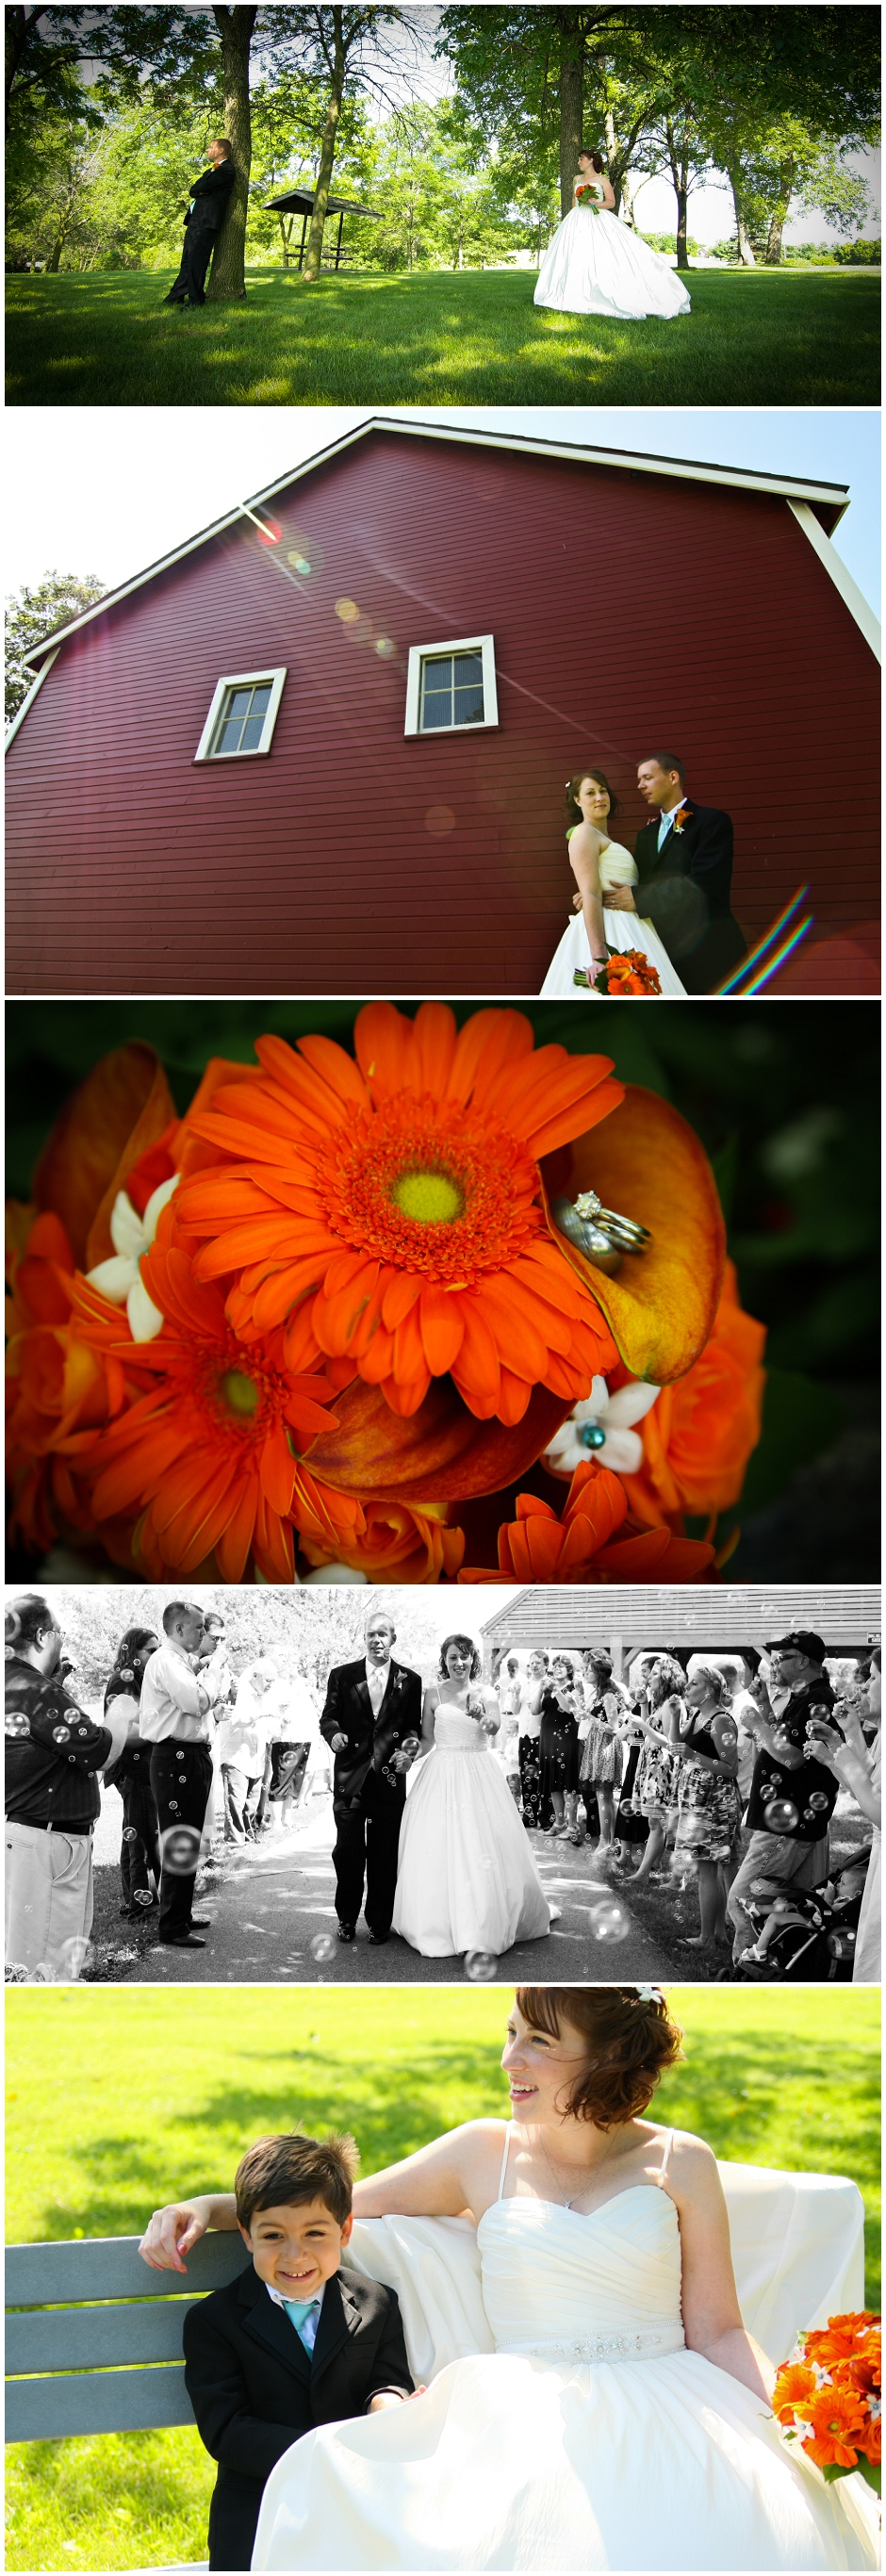 Chicago Wedding Photography: Andrew and Emily's Iowa Wedding